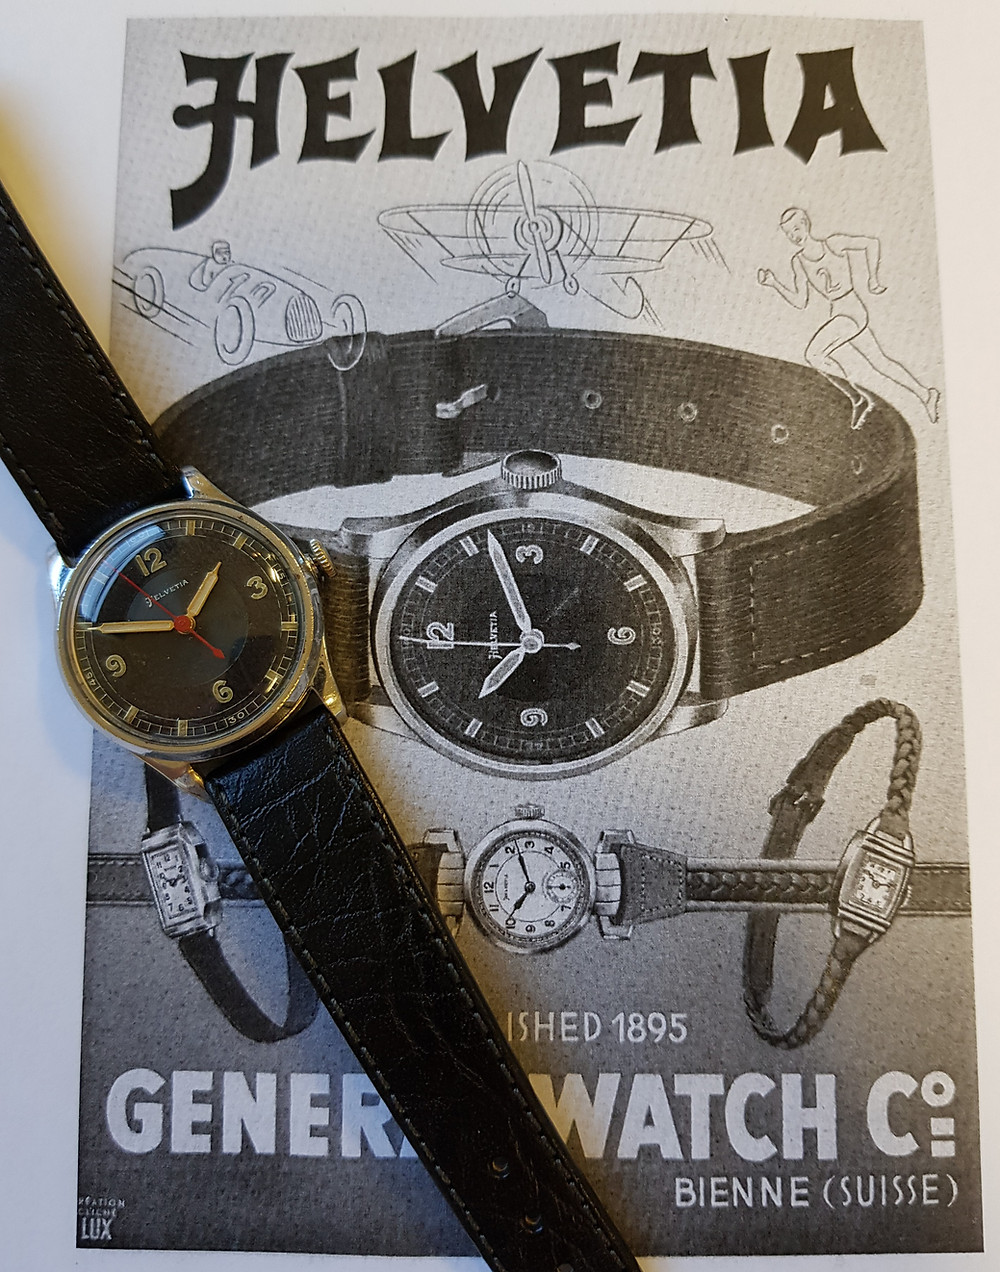 Helvetia 1030s Sports Watch with Advert from 1939